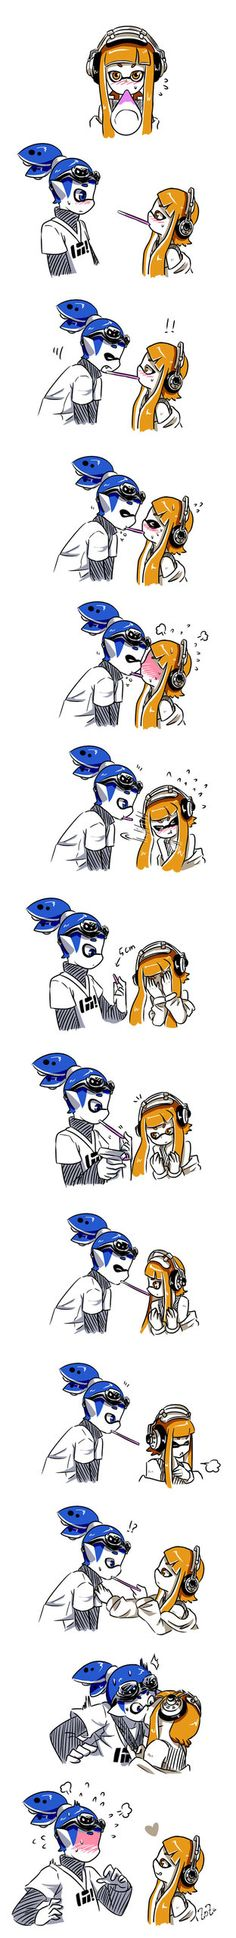 [splatoon] happy pocky day by ZozaZero on DeviantArt It went on late into the night at the nearby Splatfest event, as the music wound down and the lights flickered off one at a time. The two inklings, one having long blue hair while the other having … Splatoon Memes, Splatoon 2 Art, Splatoon Comics, Nintendo Splatoon, Cute Comics, Funny Comics, Image Zelda, Pocky Game, Callie And Marie